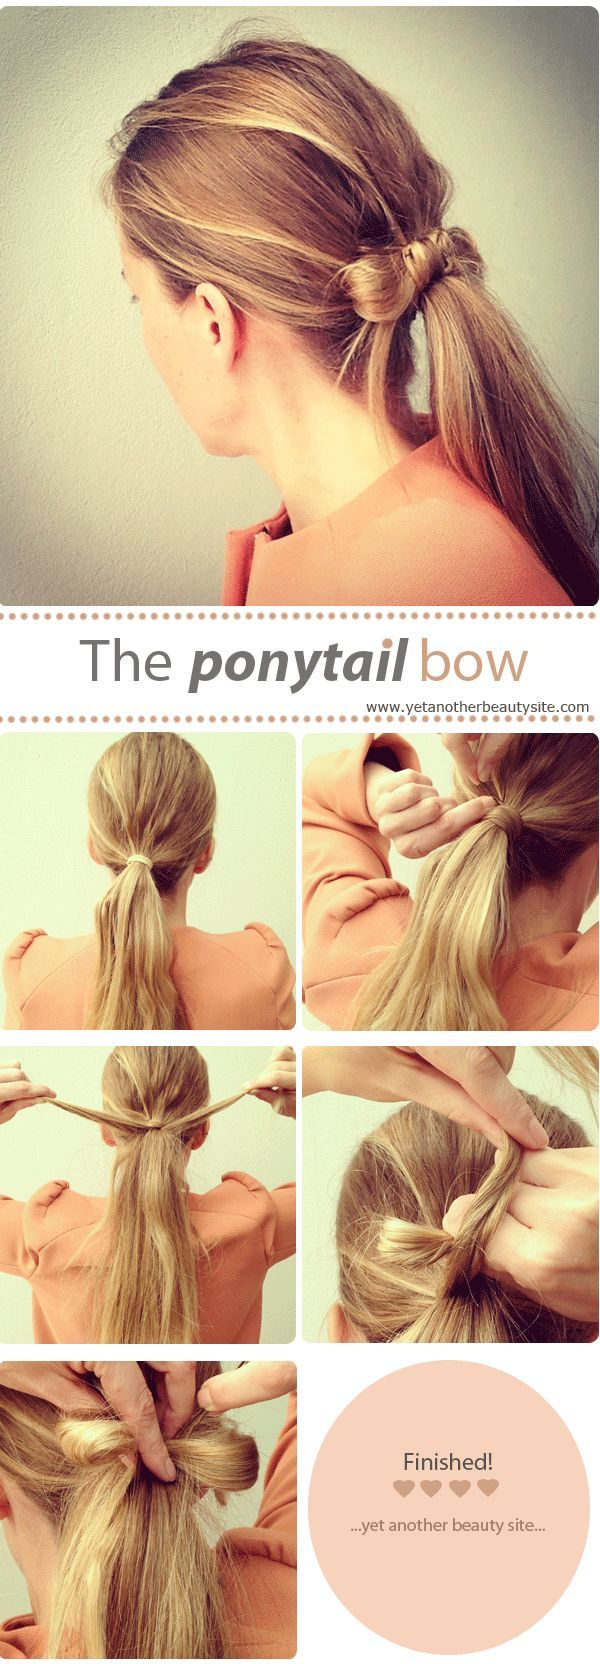 The Pony Bow - 15 Ways to Make Cute Ponytails